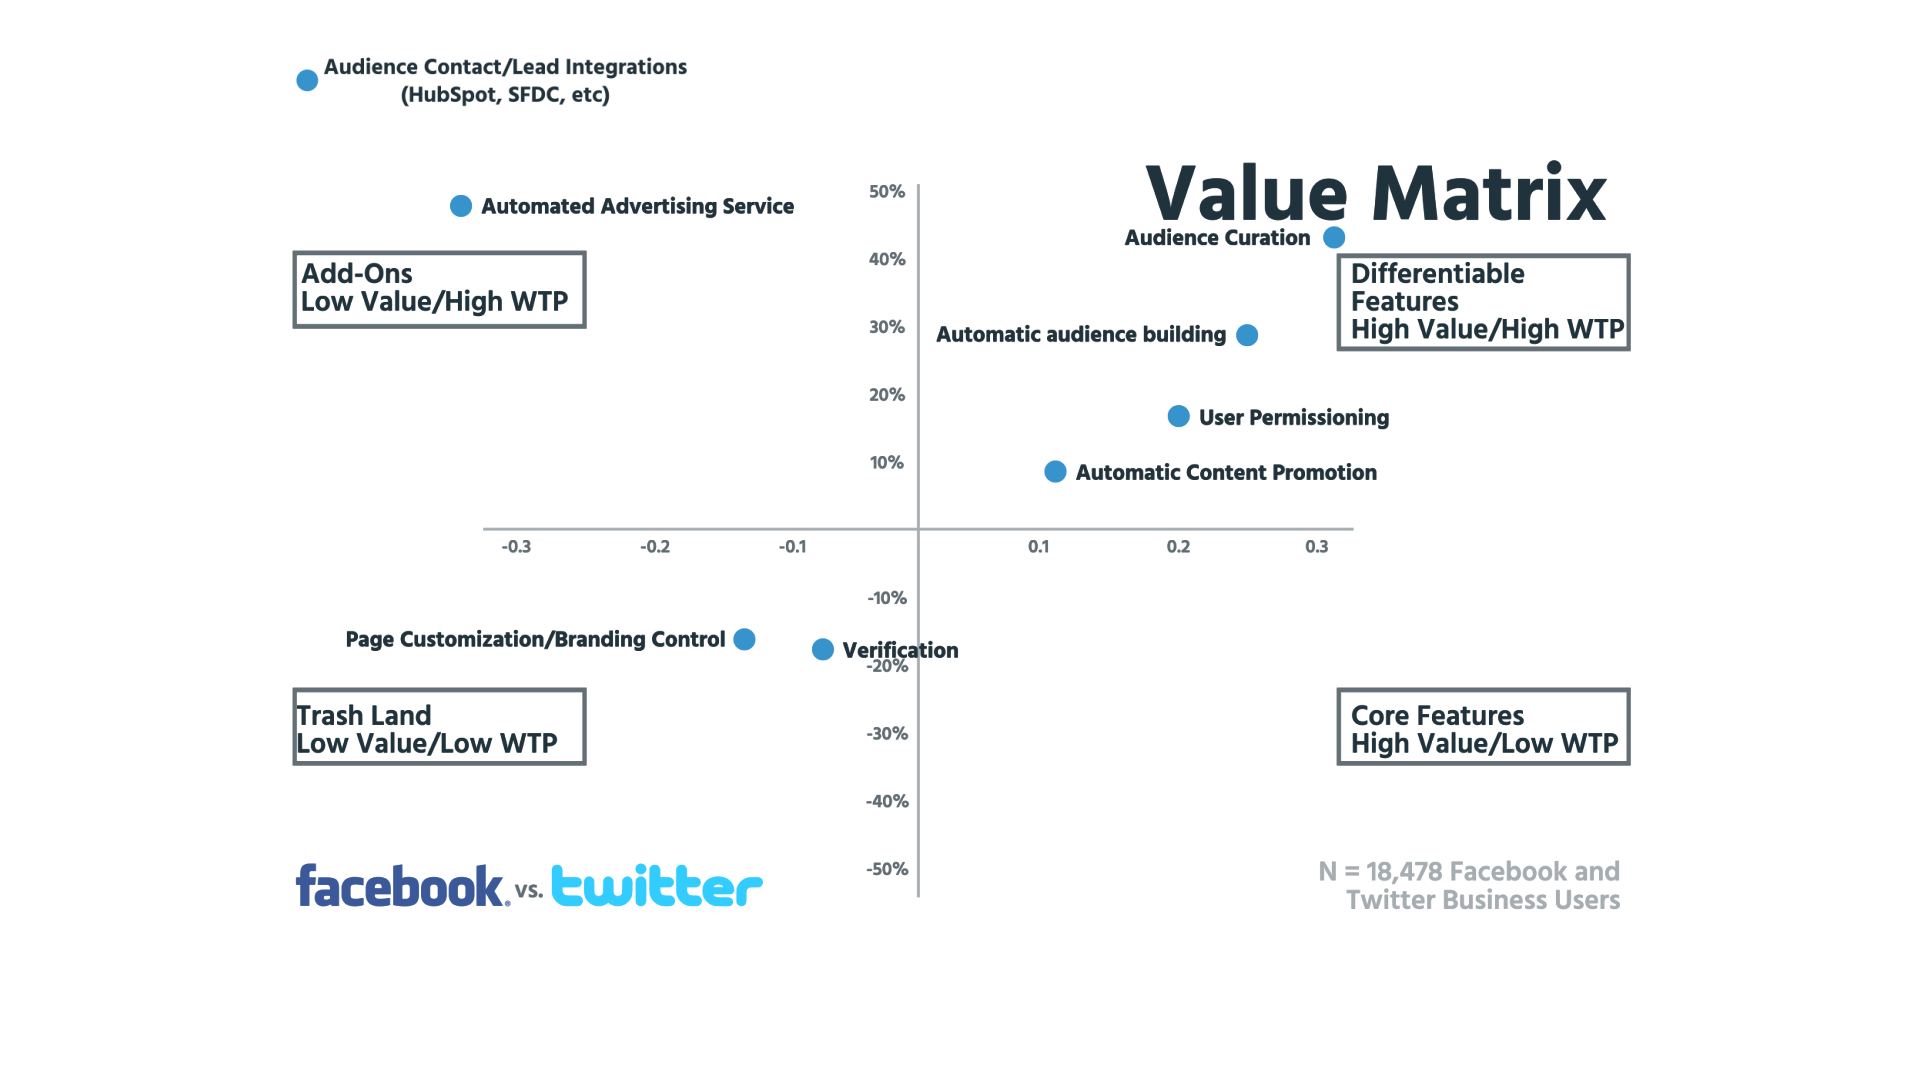 Value Matrix Zoom Out